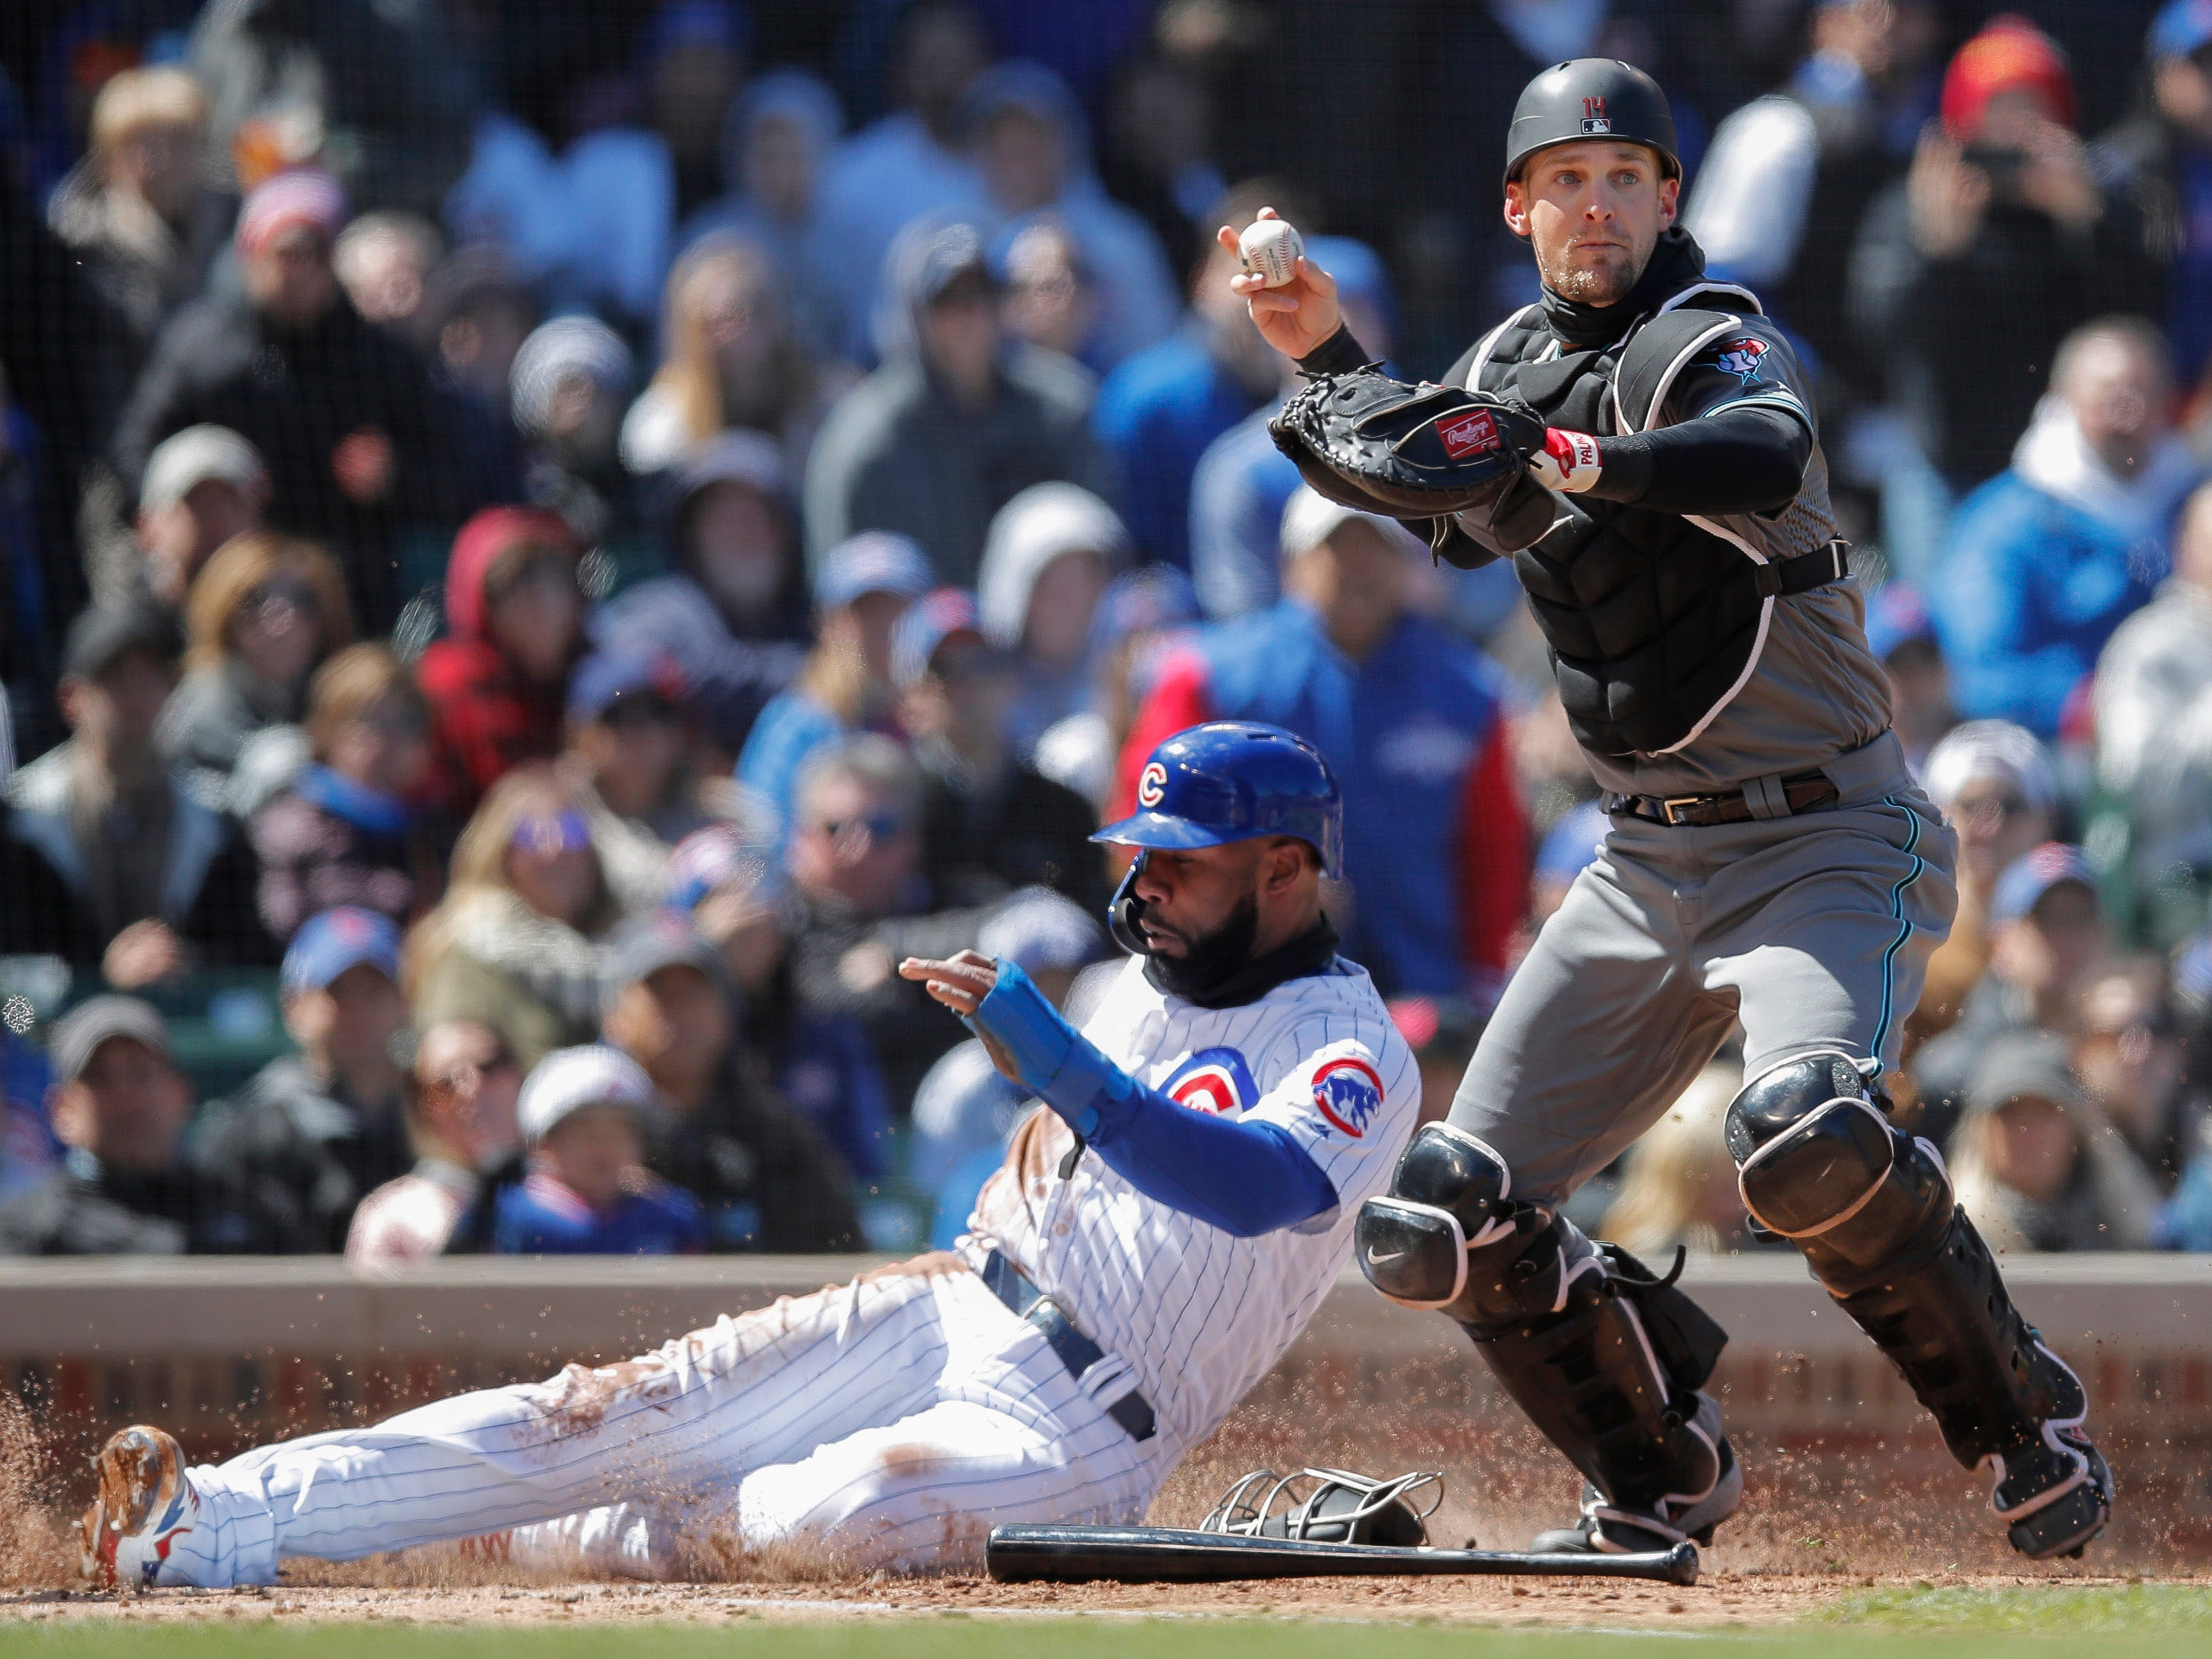 Cubs right fielder Jason Heyward is called out at home plate behind Diamondbacks catcher Caleb Joseph during the second inning of a game April 19 at Wrigley Field.